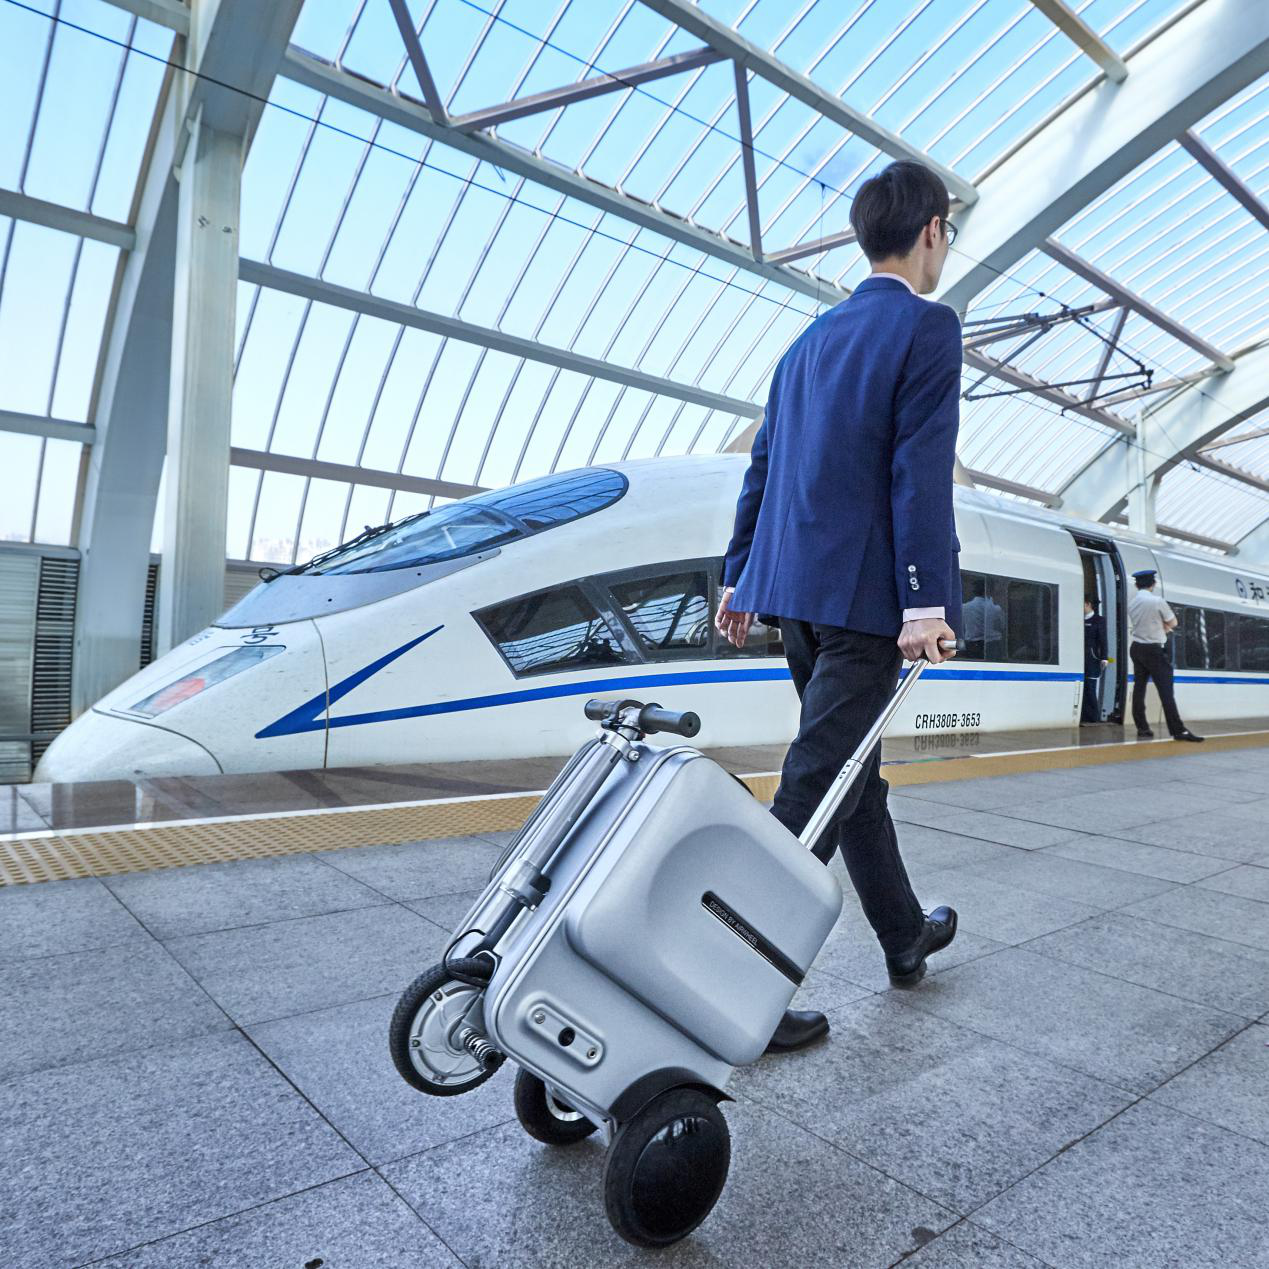 Airwheel rideable Luggage